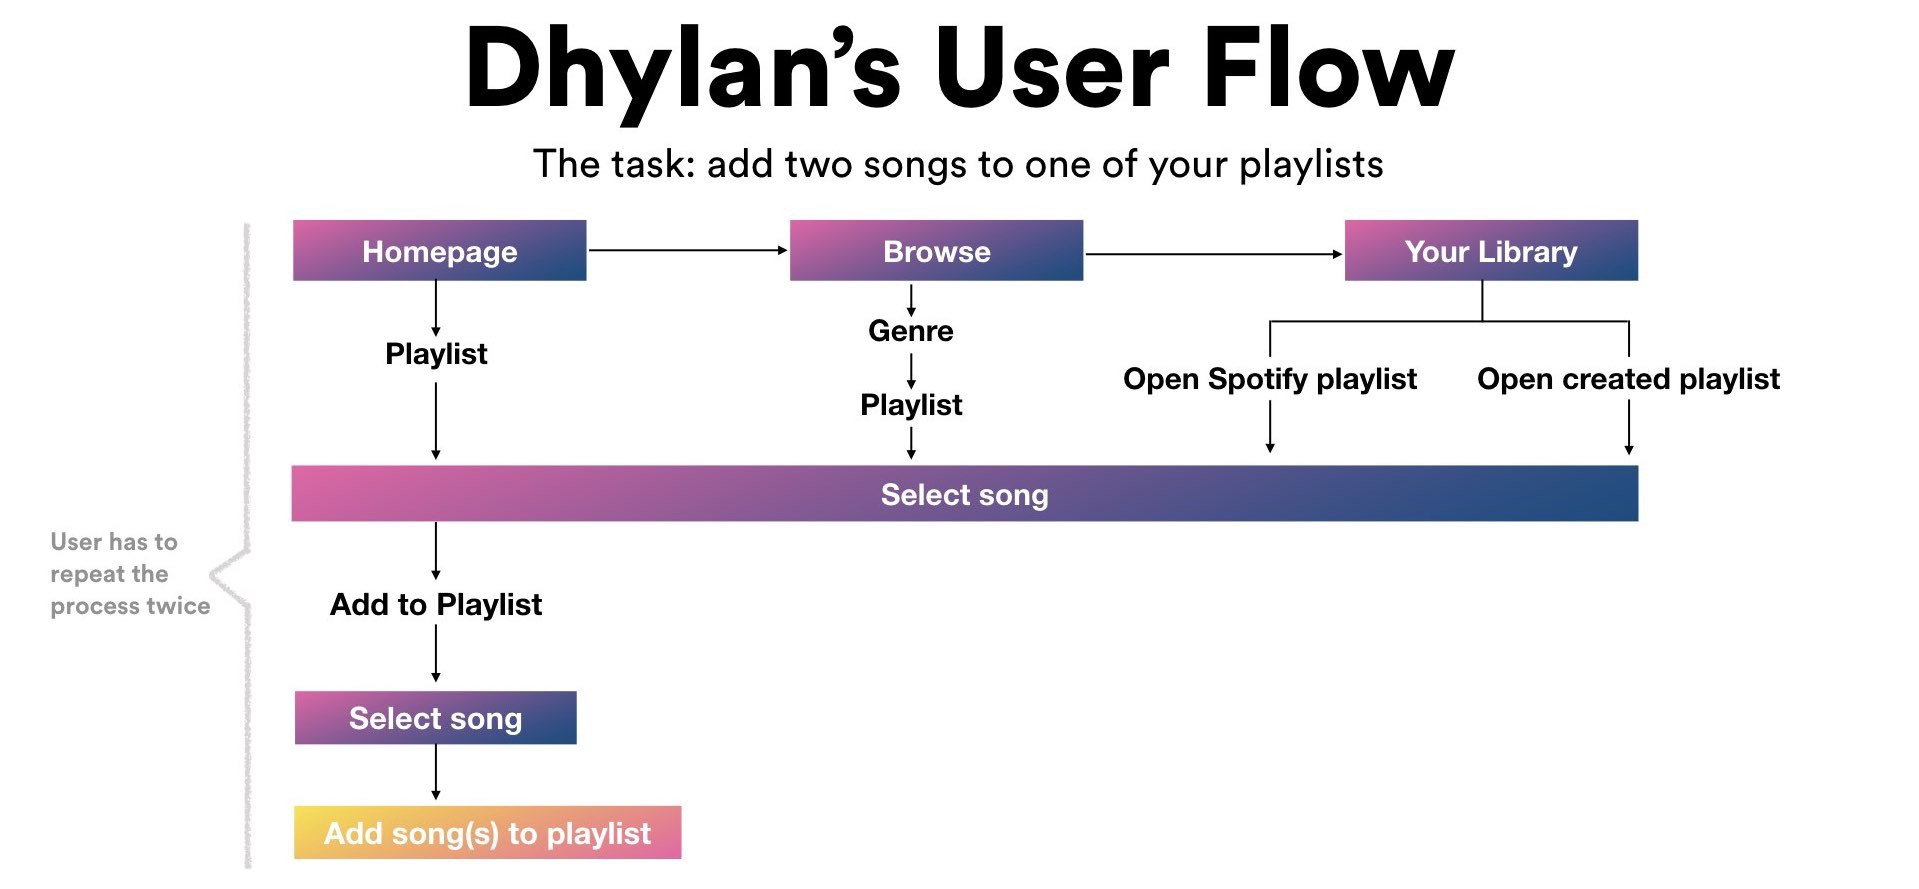 Have you Spotify recently? - UX Collective